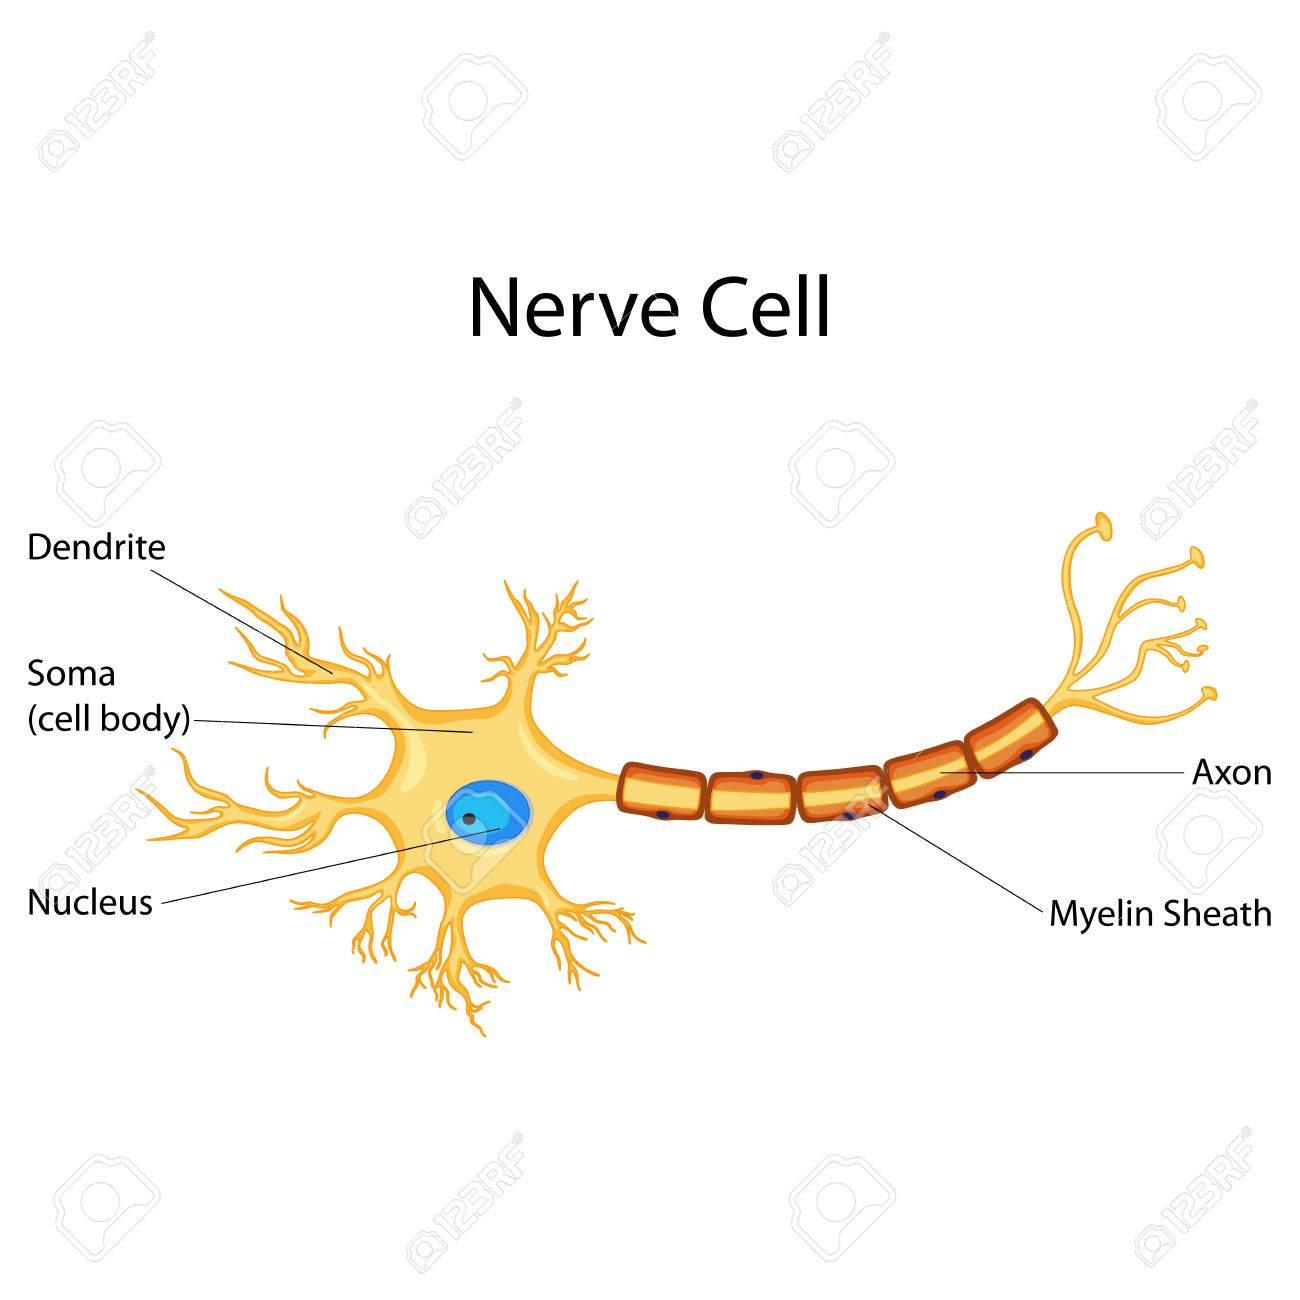 Biology Nerve Diagram Circuit Symbols Help Plant Cell Education Chart Of For Royalty Free Rh 123rf Com Labeled Animal